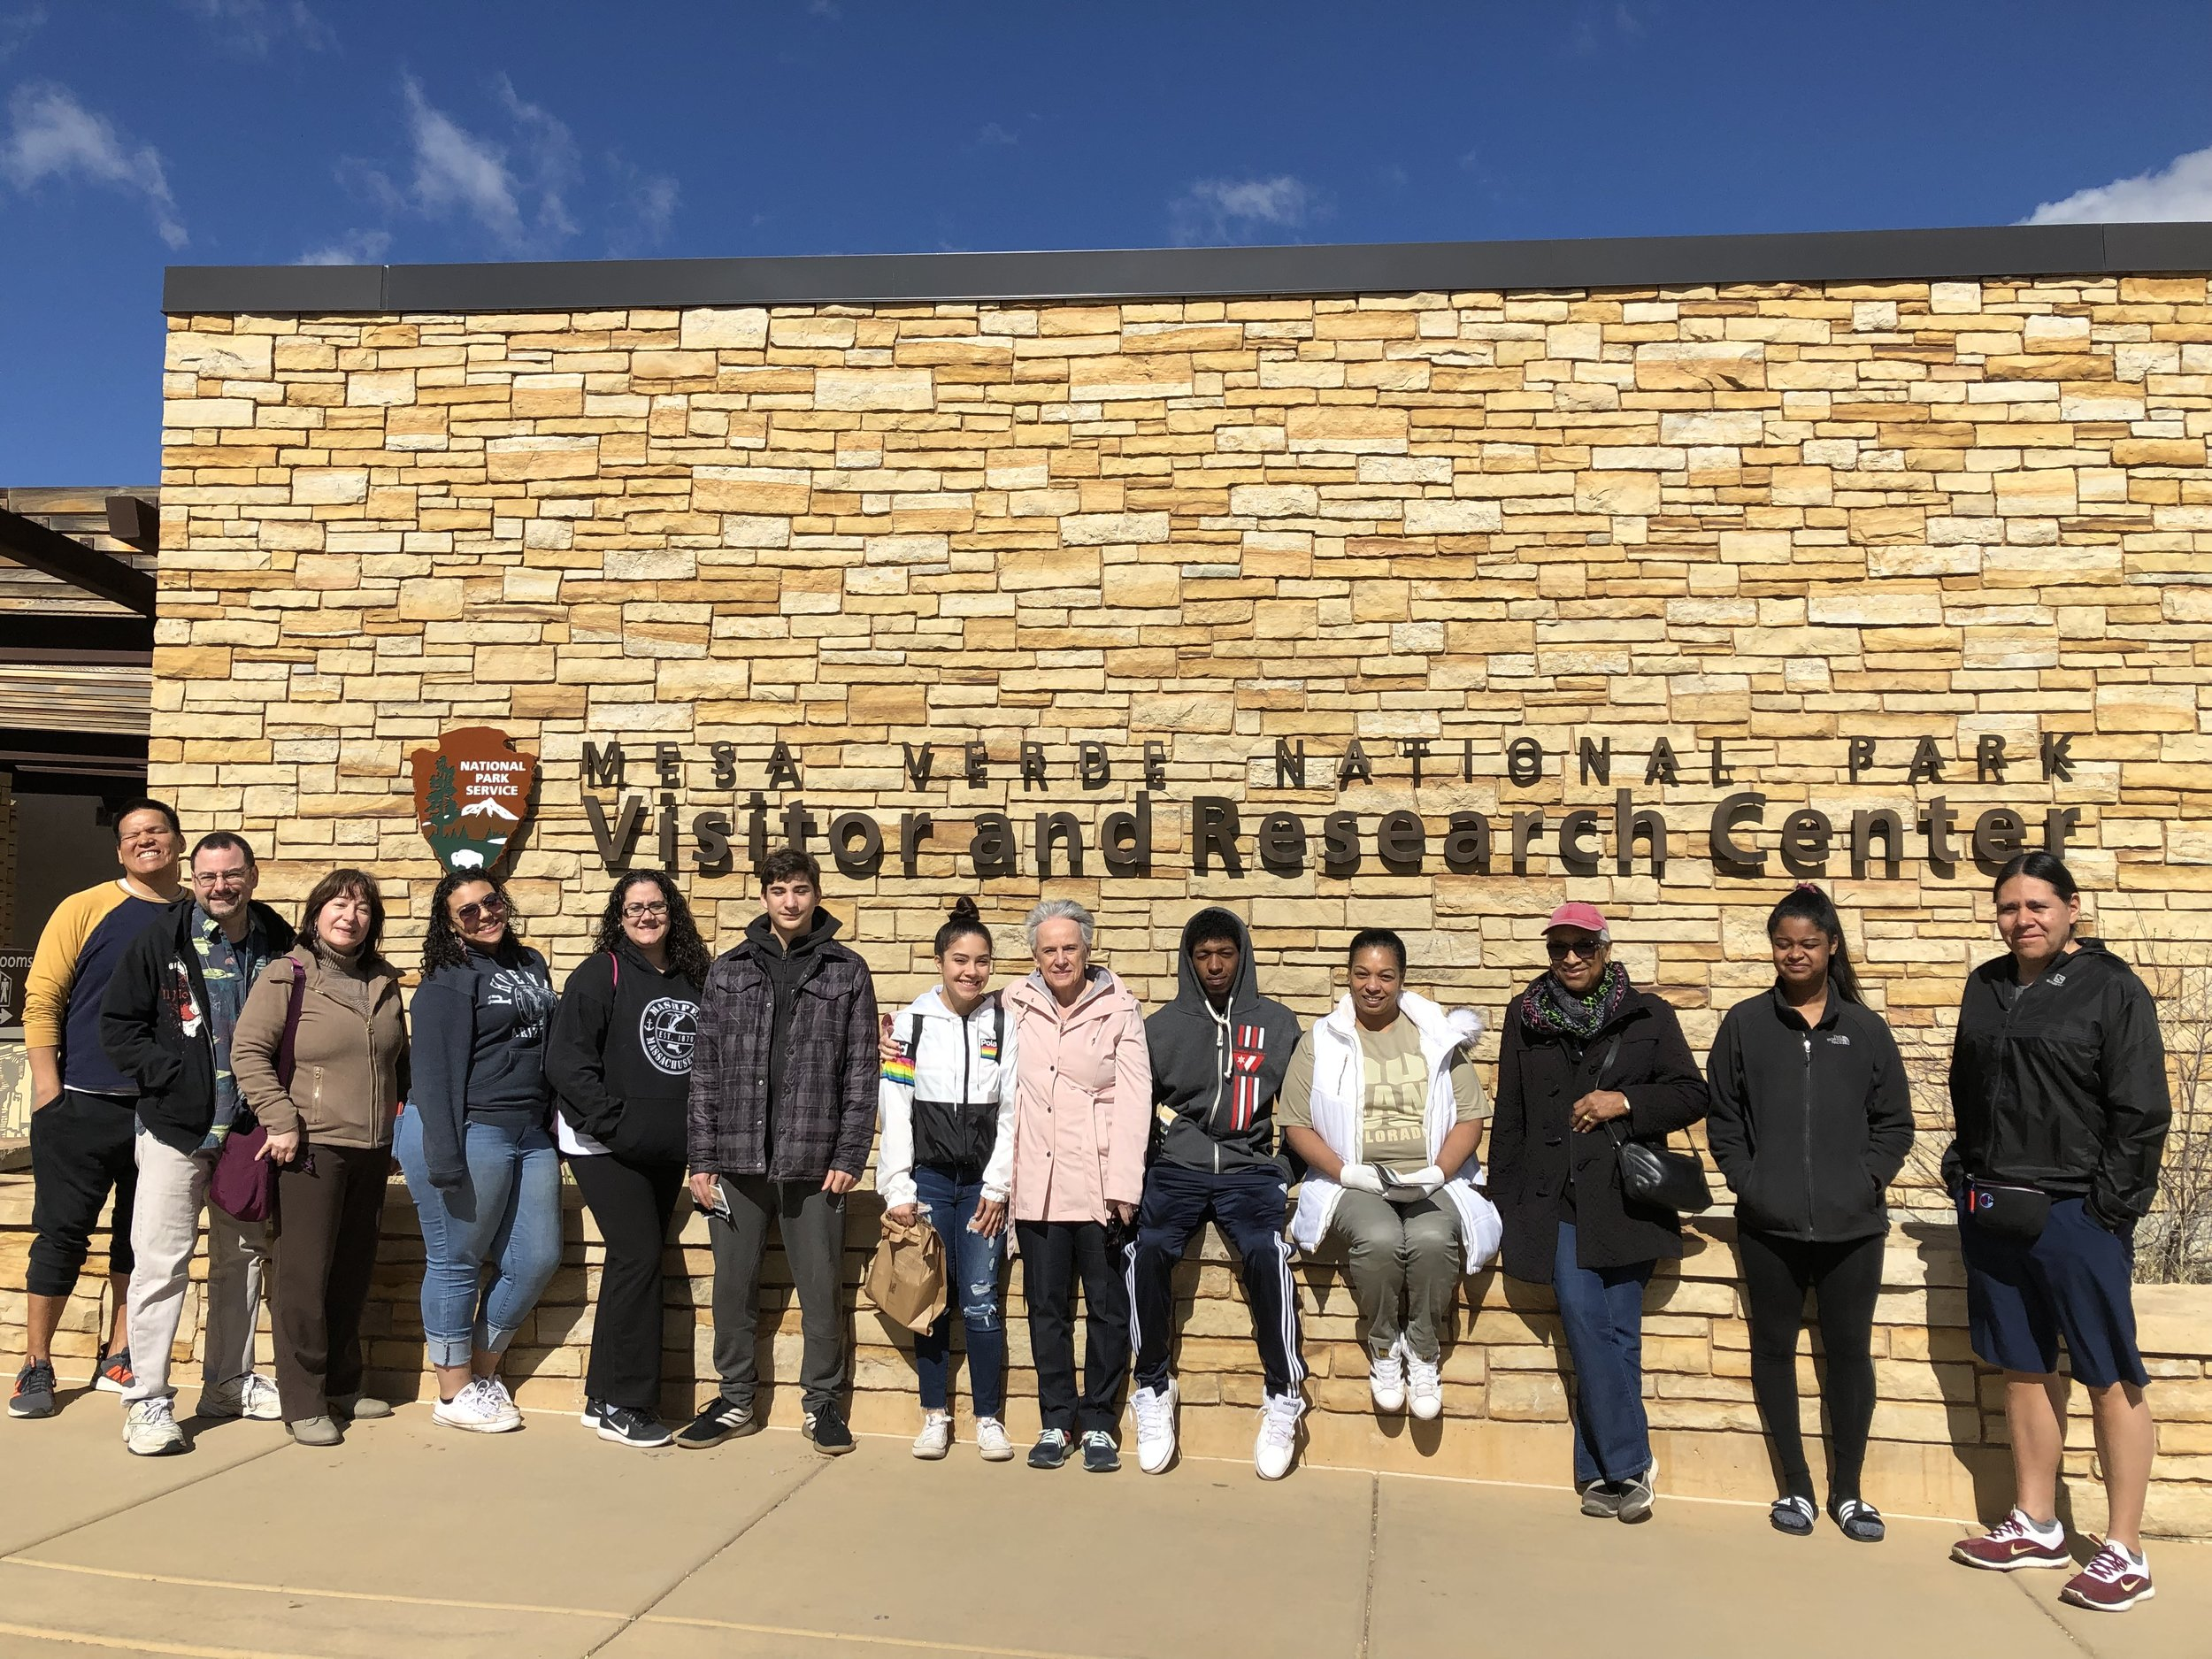 Students at the Mesa Verde National Park in Colorado during the April Vacation college tours.